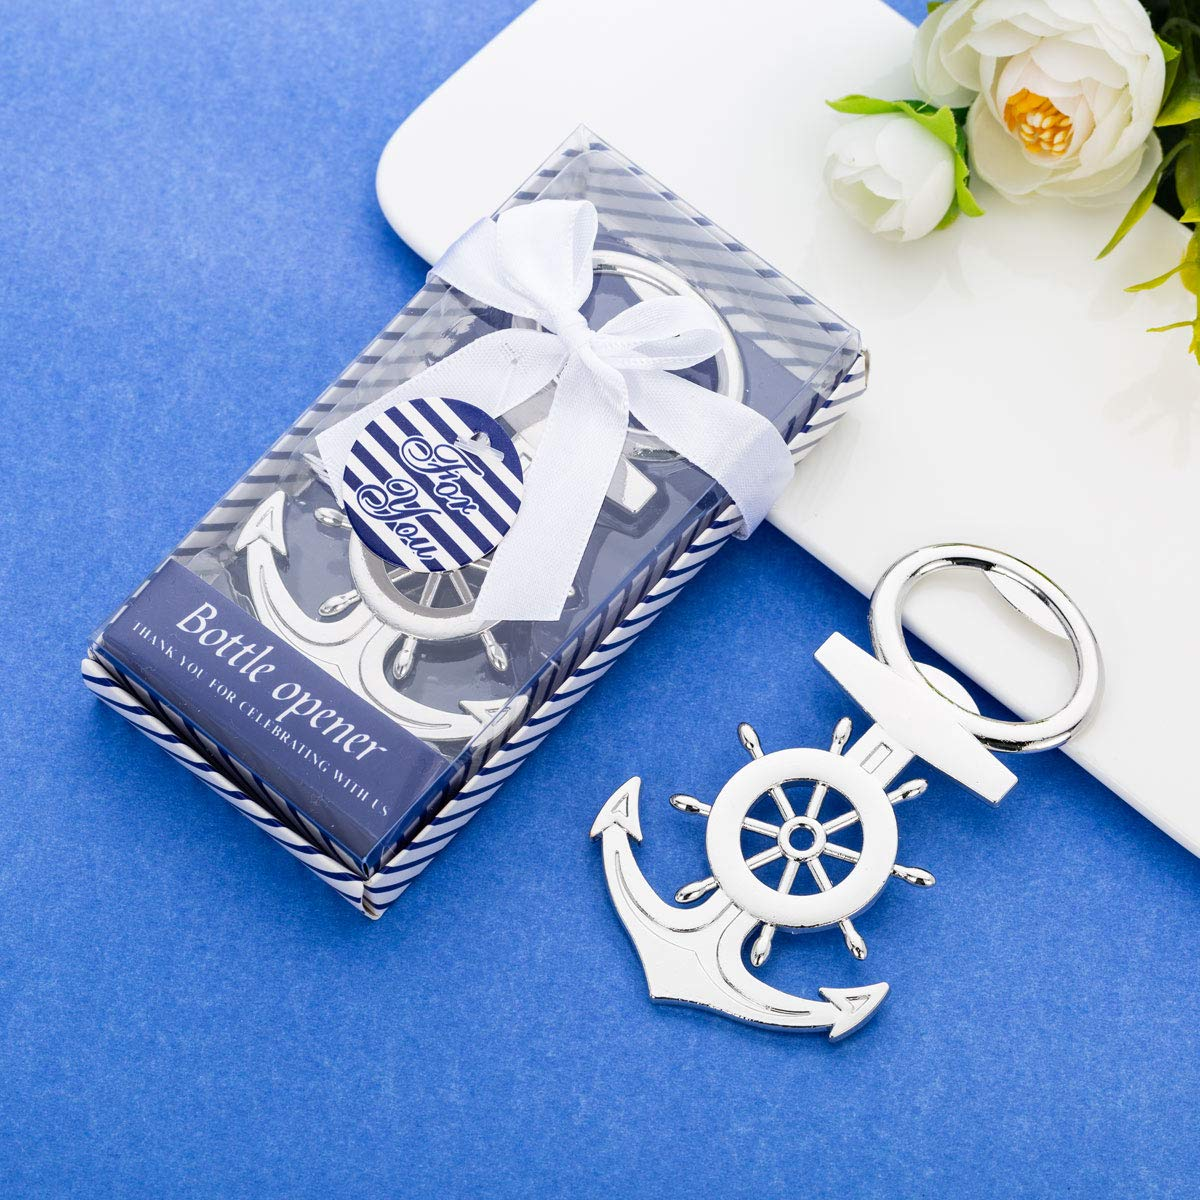 36 Pcs Nautical Themed Anchor & Wheel Beer Bottle Opener Party Favors for Guests Boxed Souvenir Gift Favor for Nautical Beach Wedding Baby Bridal Shower Birthday Party